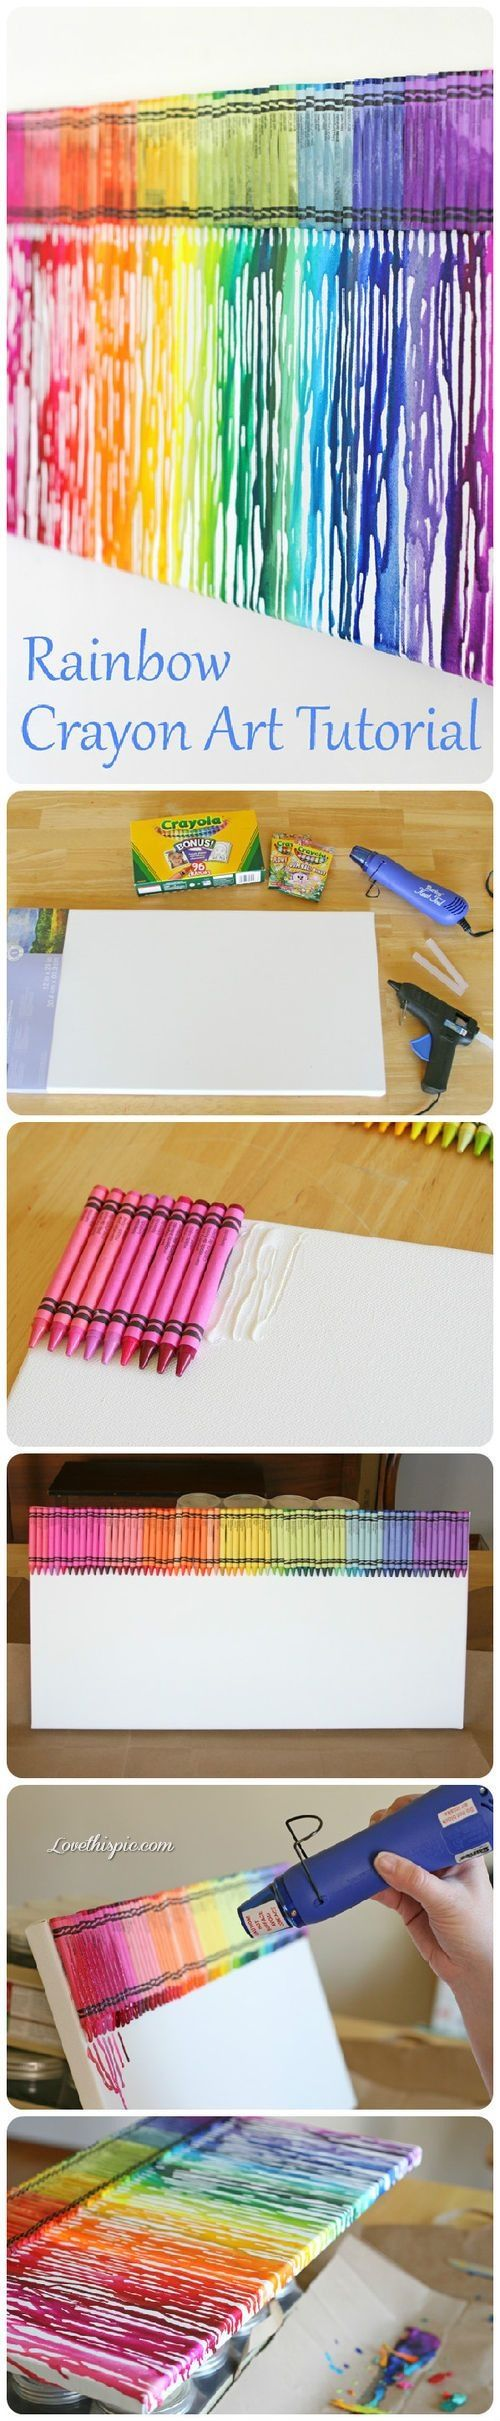 Crayon Melt Art. I think this would look good over my student supply table. I wonder if I could use stickers to spell 'student supplies' and then peel them off when I am done?